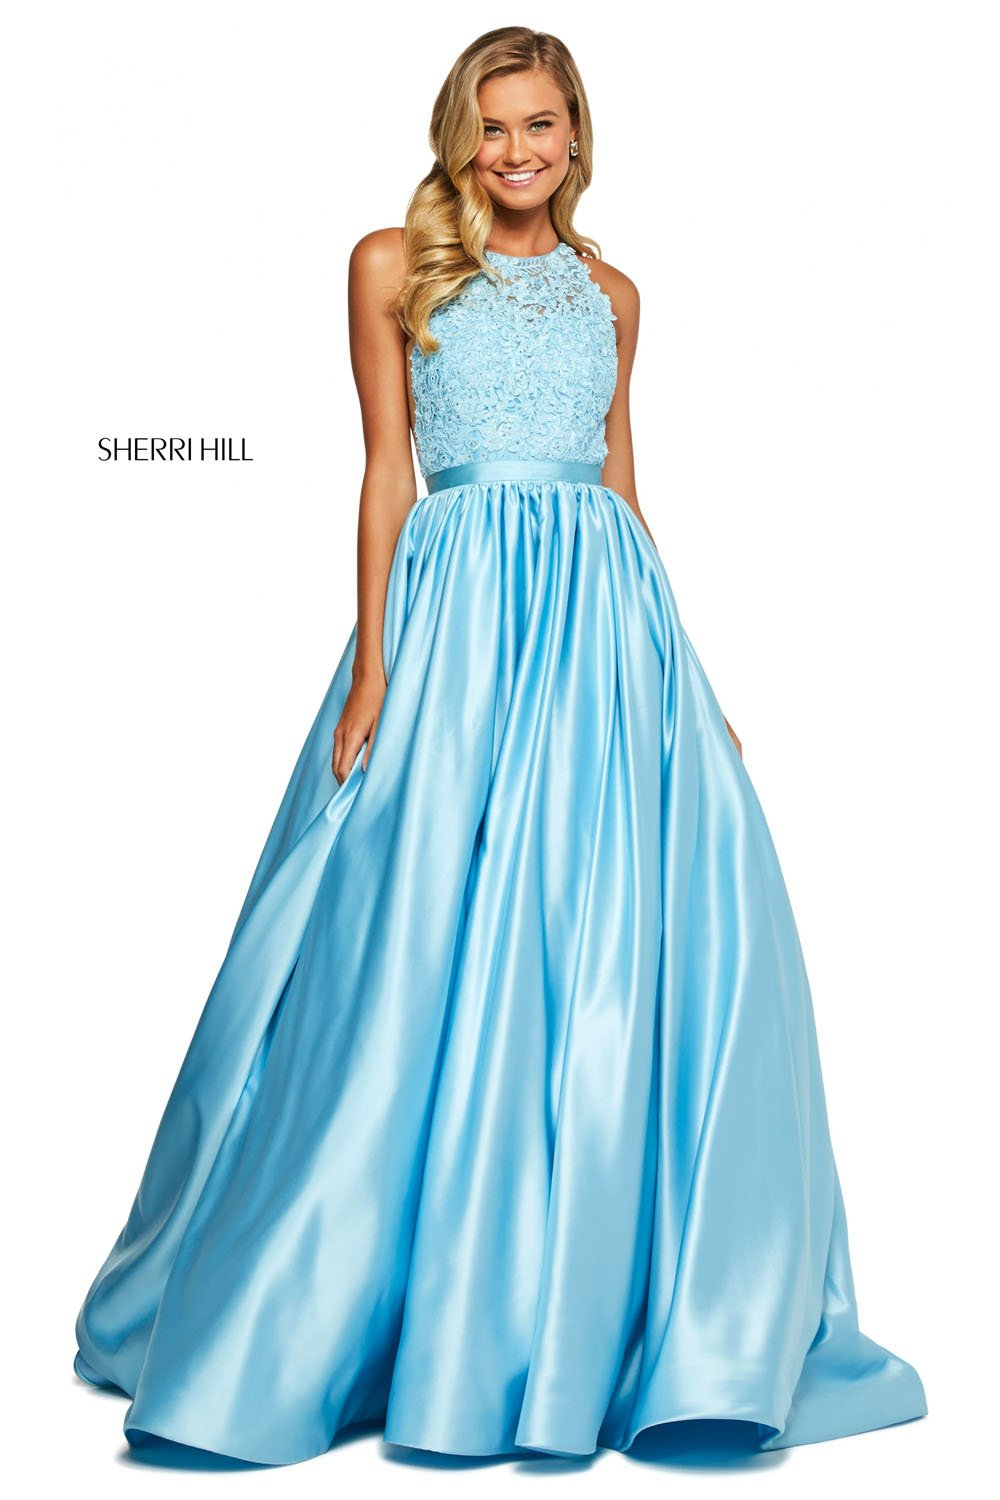 Sherri Hill 53573 prom dress images.  Sherri Hill 53573 is available in these colors: Ivory, Black, Navy, Light Blue, Fuchsia, Red, Yellow, Aqua, Blush.